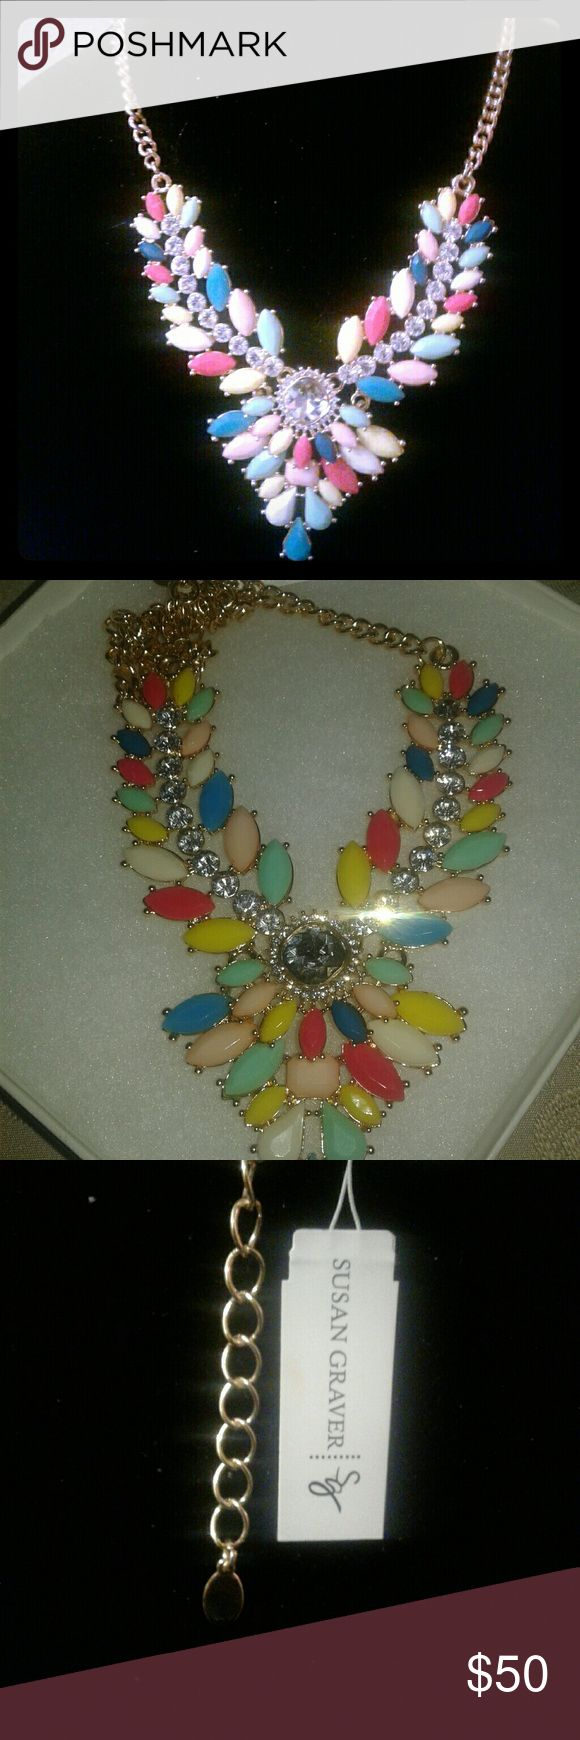 Susan Graver Nevklace Beautiful SG, simulated multi colored, pastels and rhinestone pendant, Goldtone necklace. Susan Graver Jewelry Necklaces